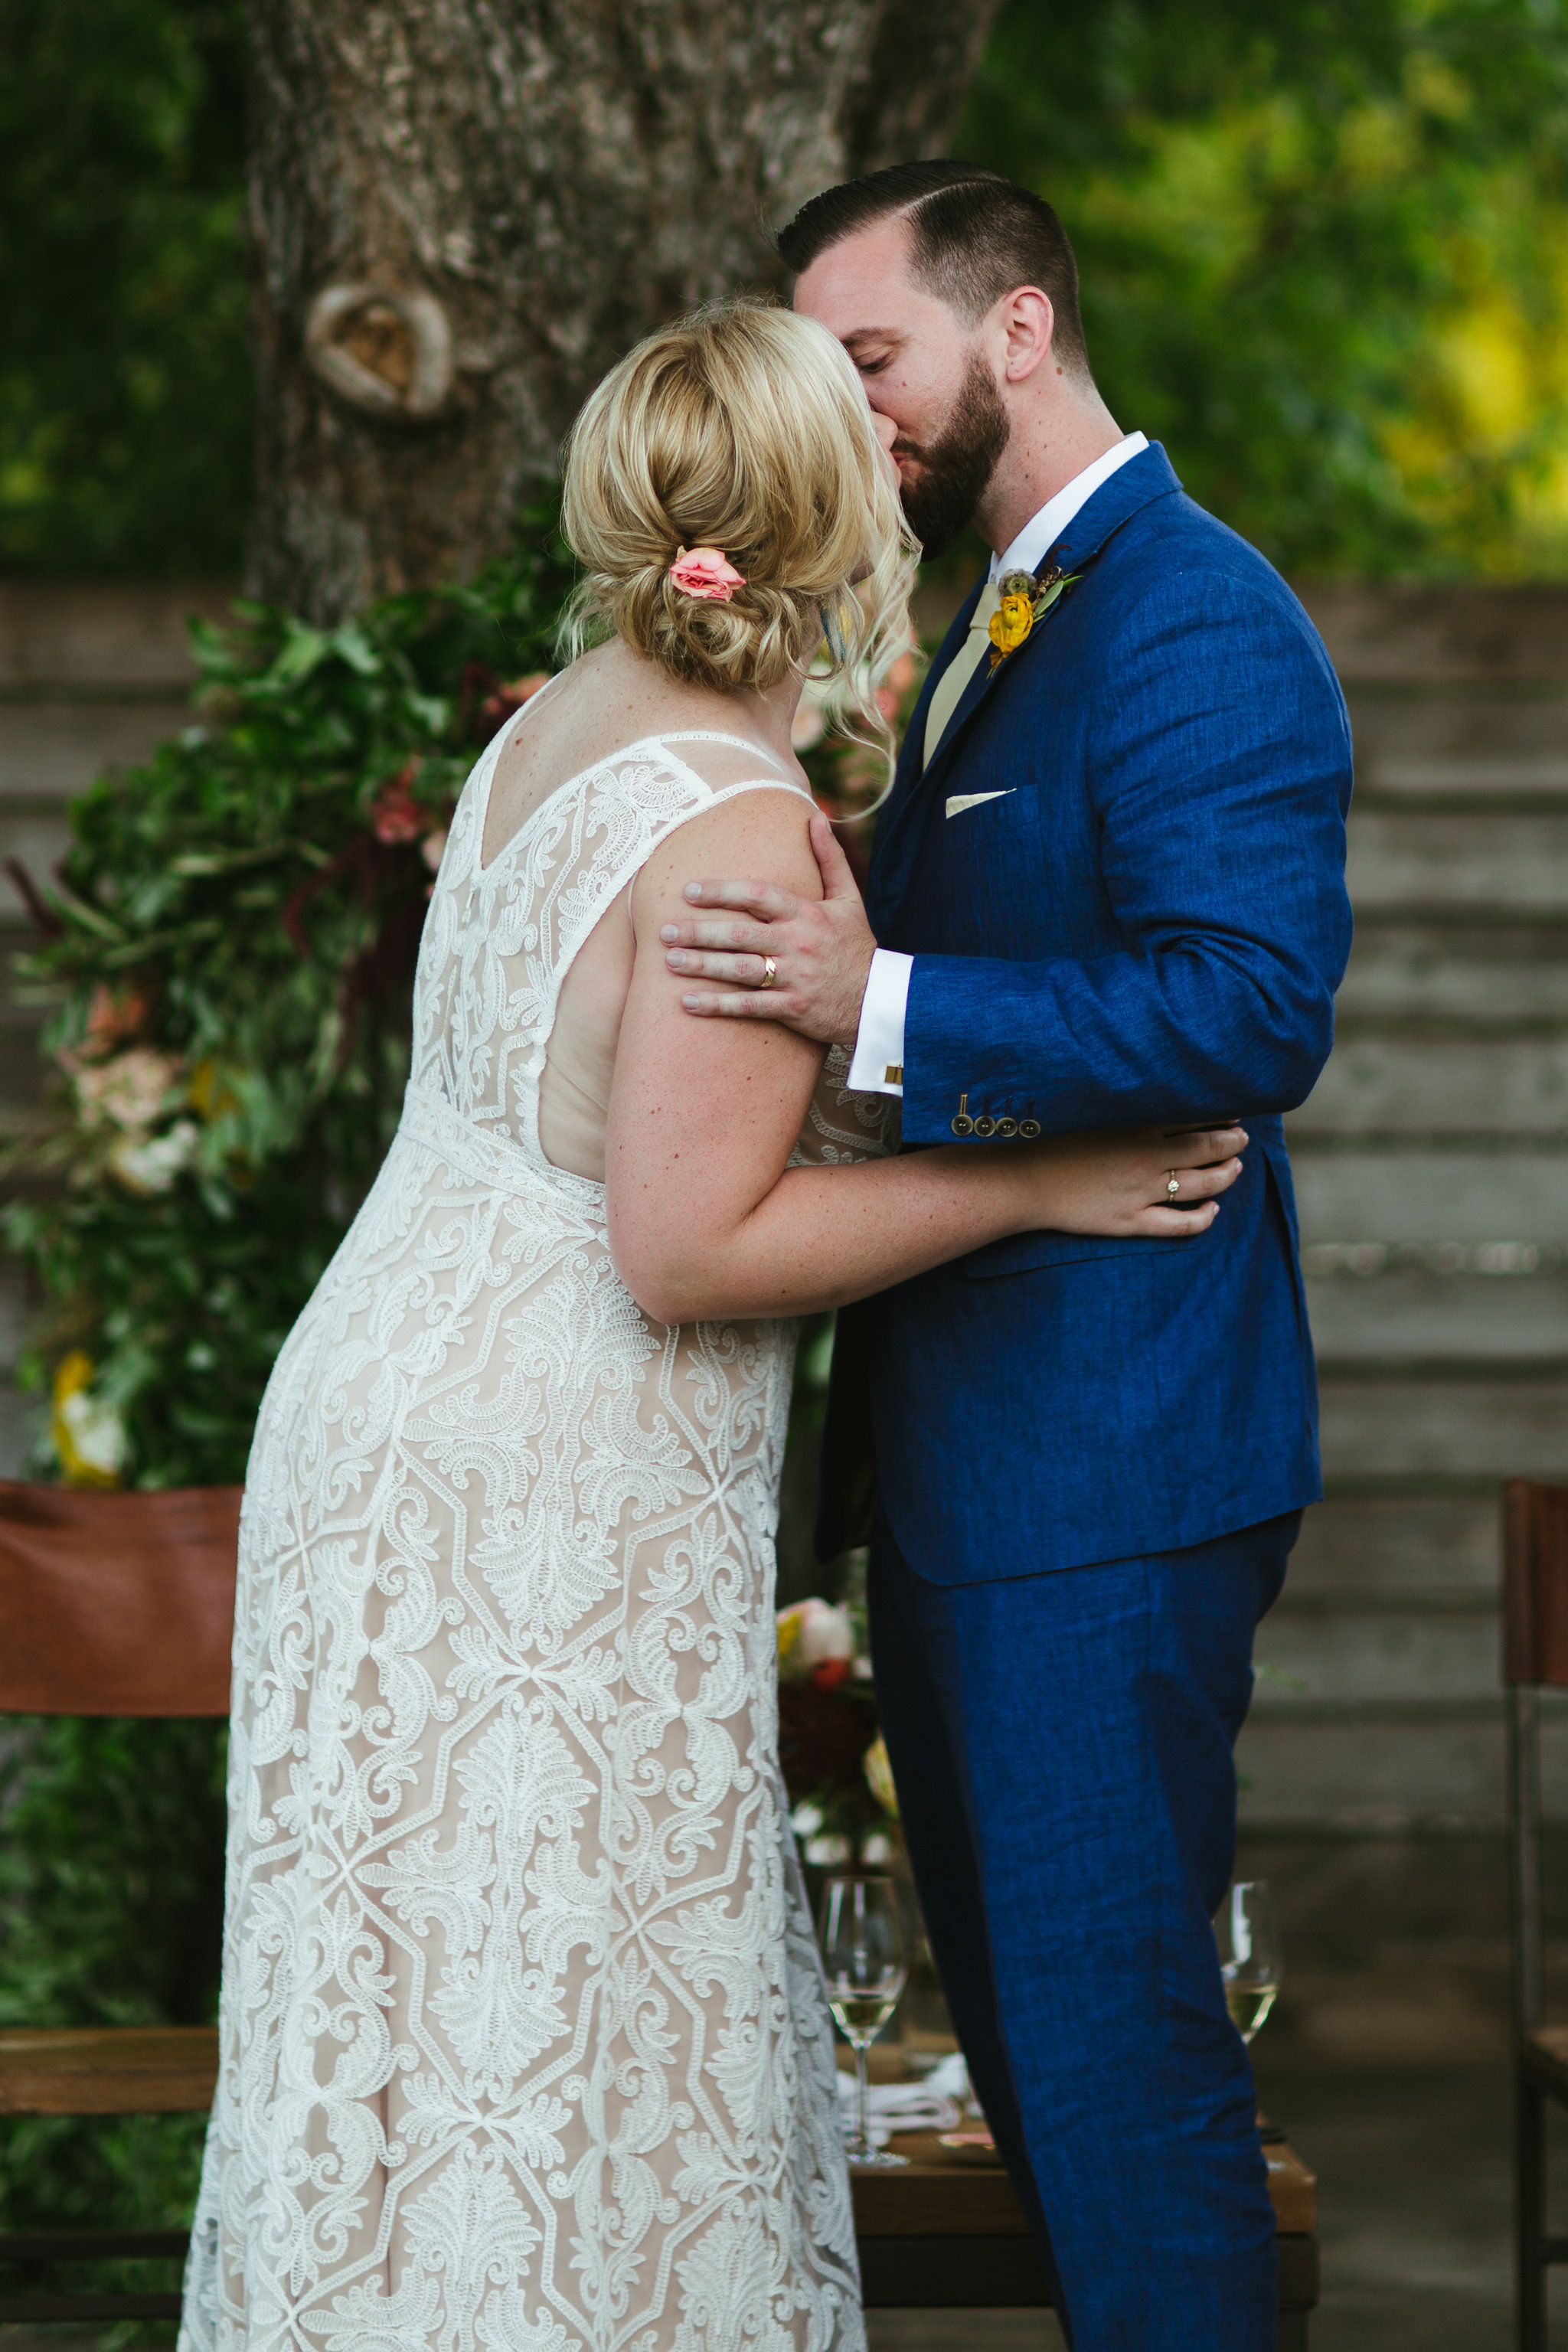 Paige-Newton-Intimate-Wedding-Photographer-Contigo-Wedding-Austin-Texas0080.jpg